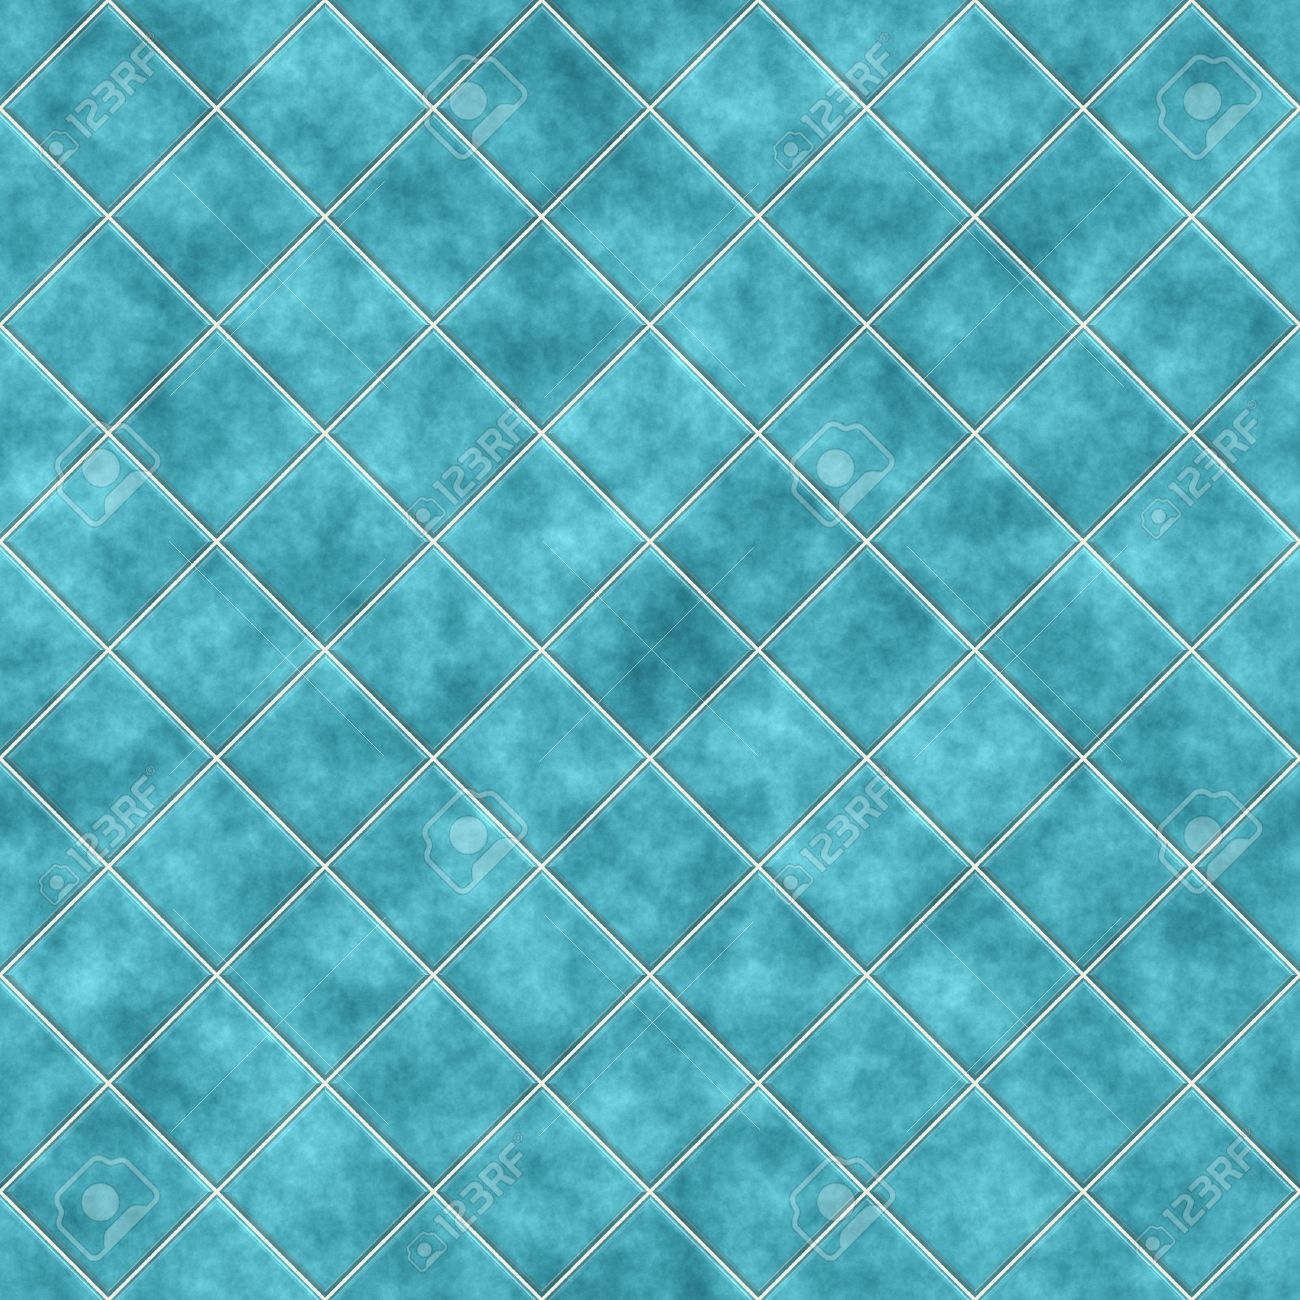 Bathroom Tiles Background seamless blue tiles texture background, kitchen or bathroom